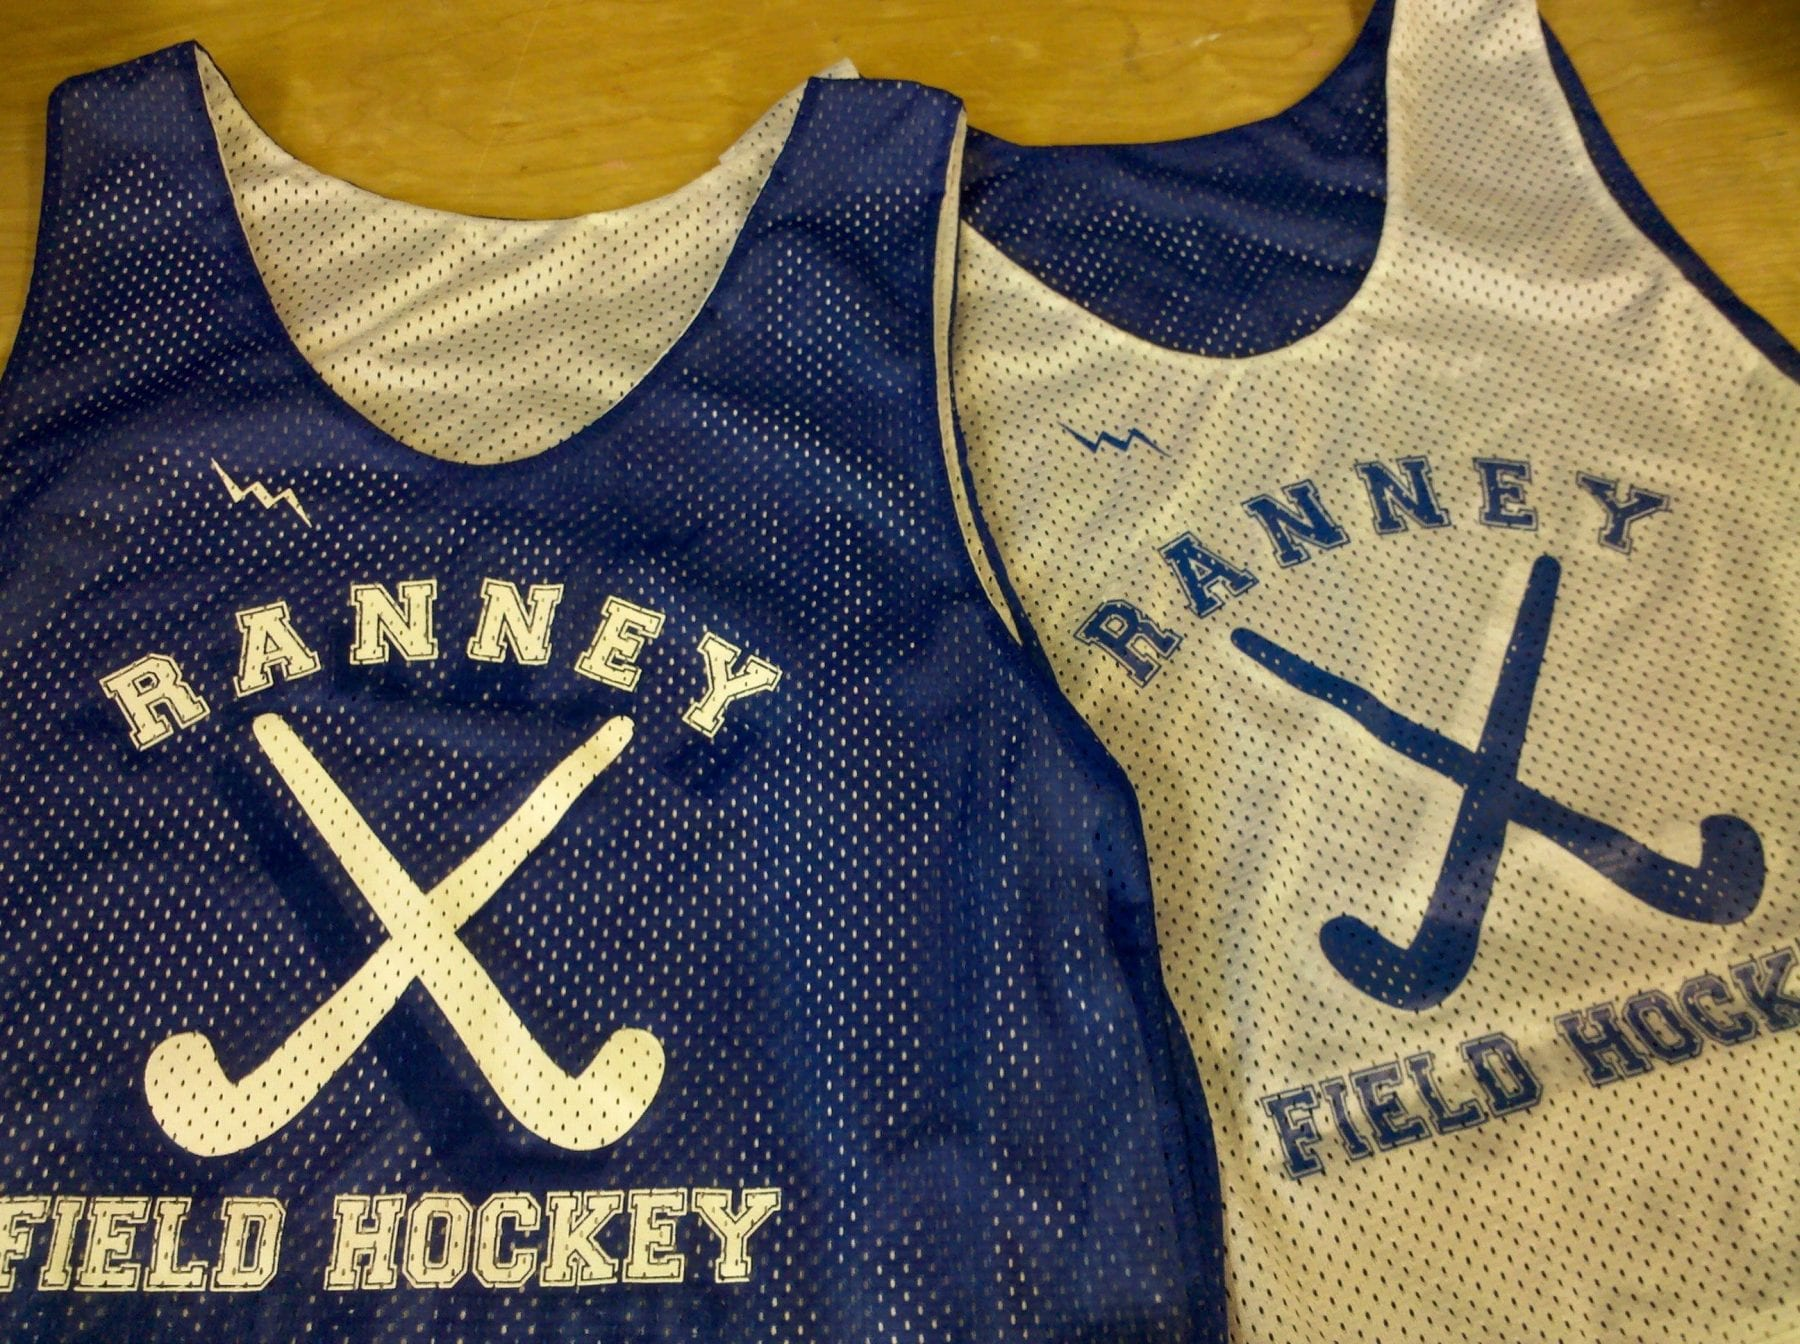 ranney field hockey pinnies